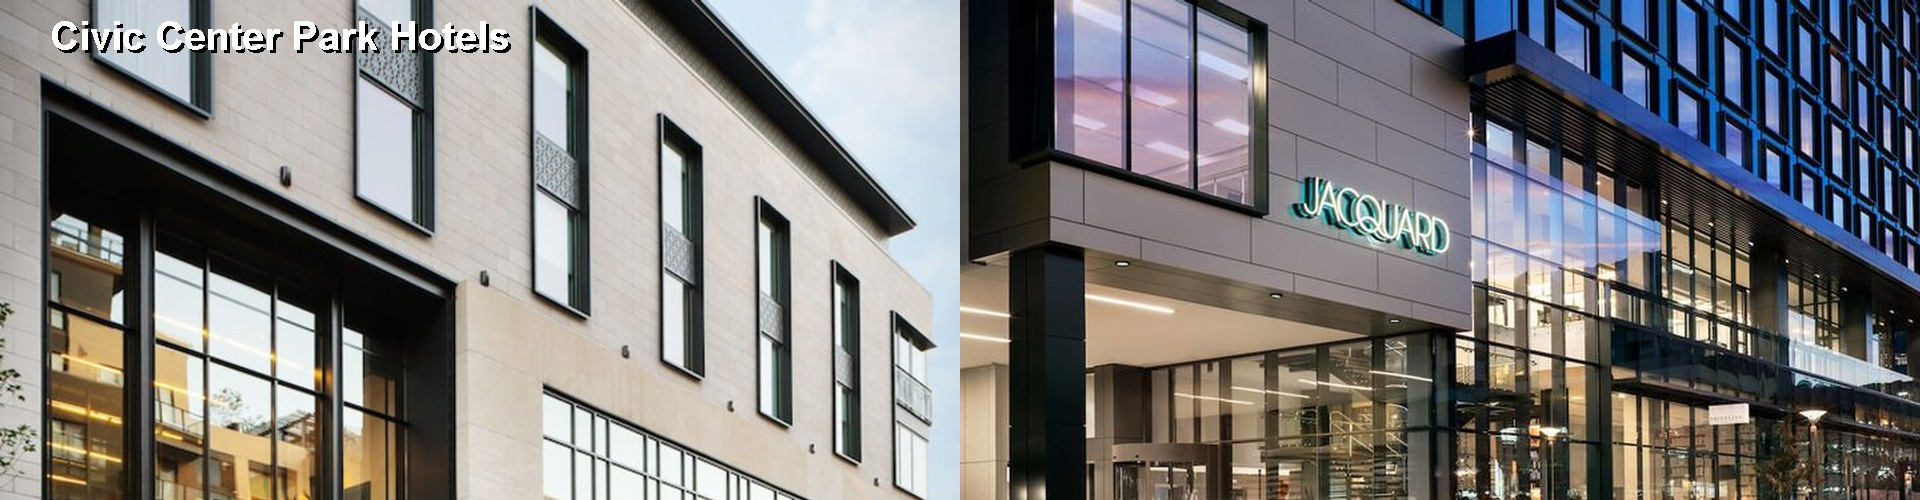 5 Best Hotels near Civic Center Park